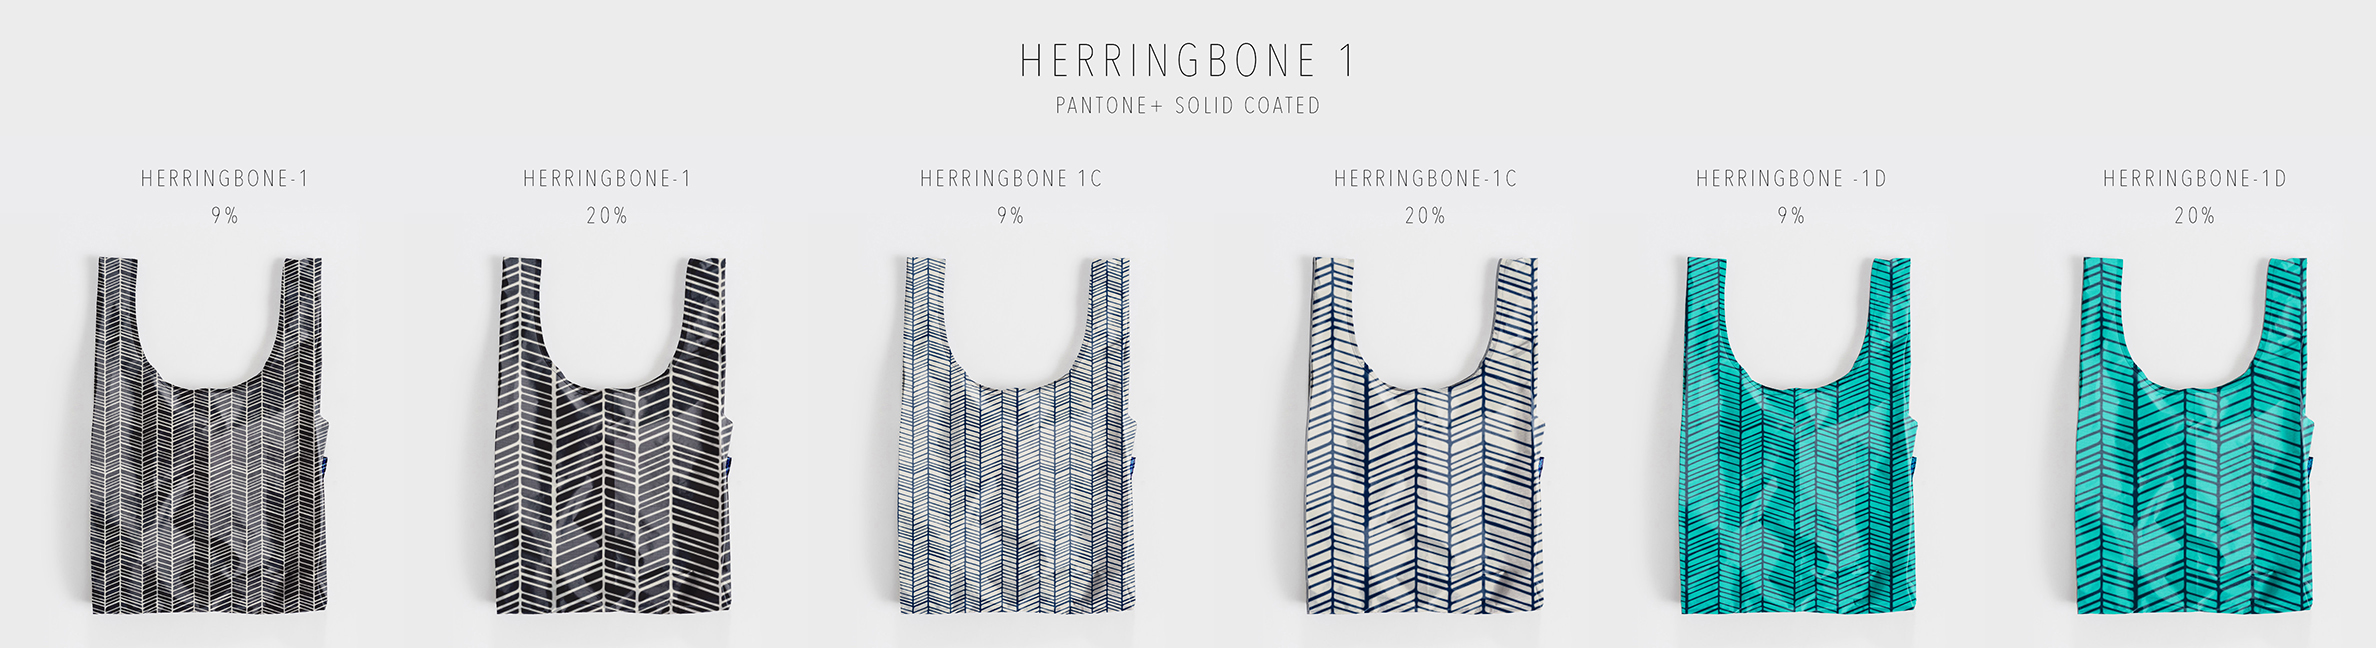 HERRINGBONE OPTIONS1small.jpg